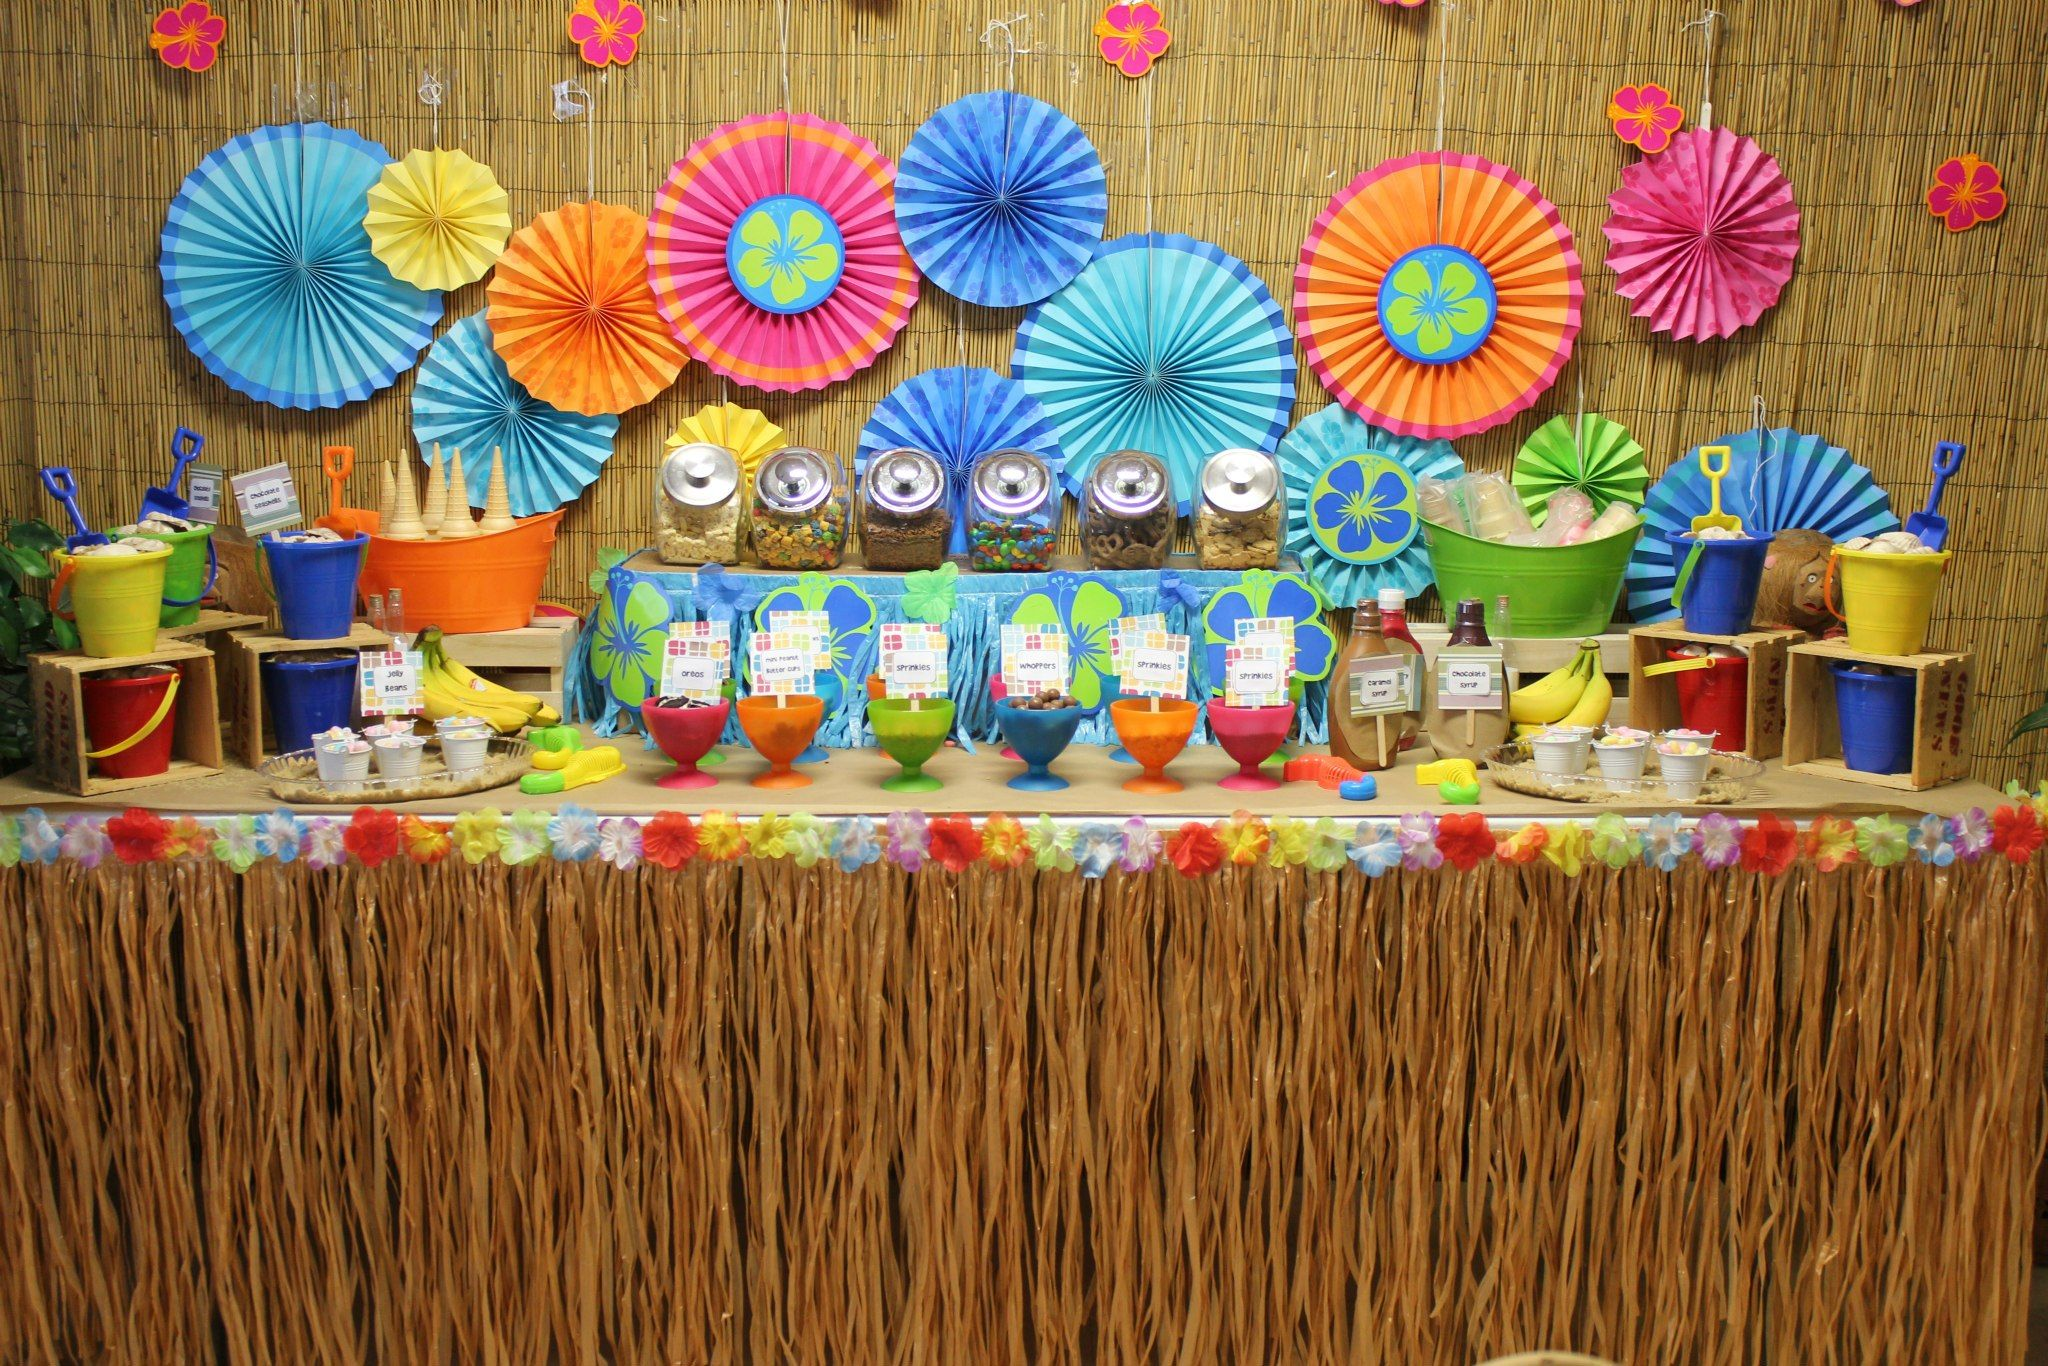 Best 25 Luau Party Foods Ideas On Pinterest: Best 25+ Luau Party Centerpieces Ideas On Pinterest